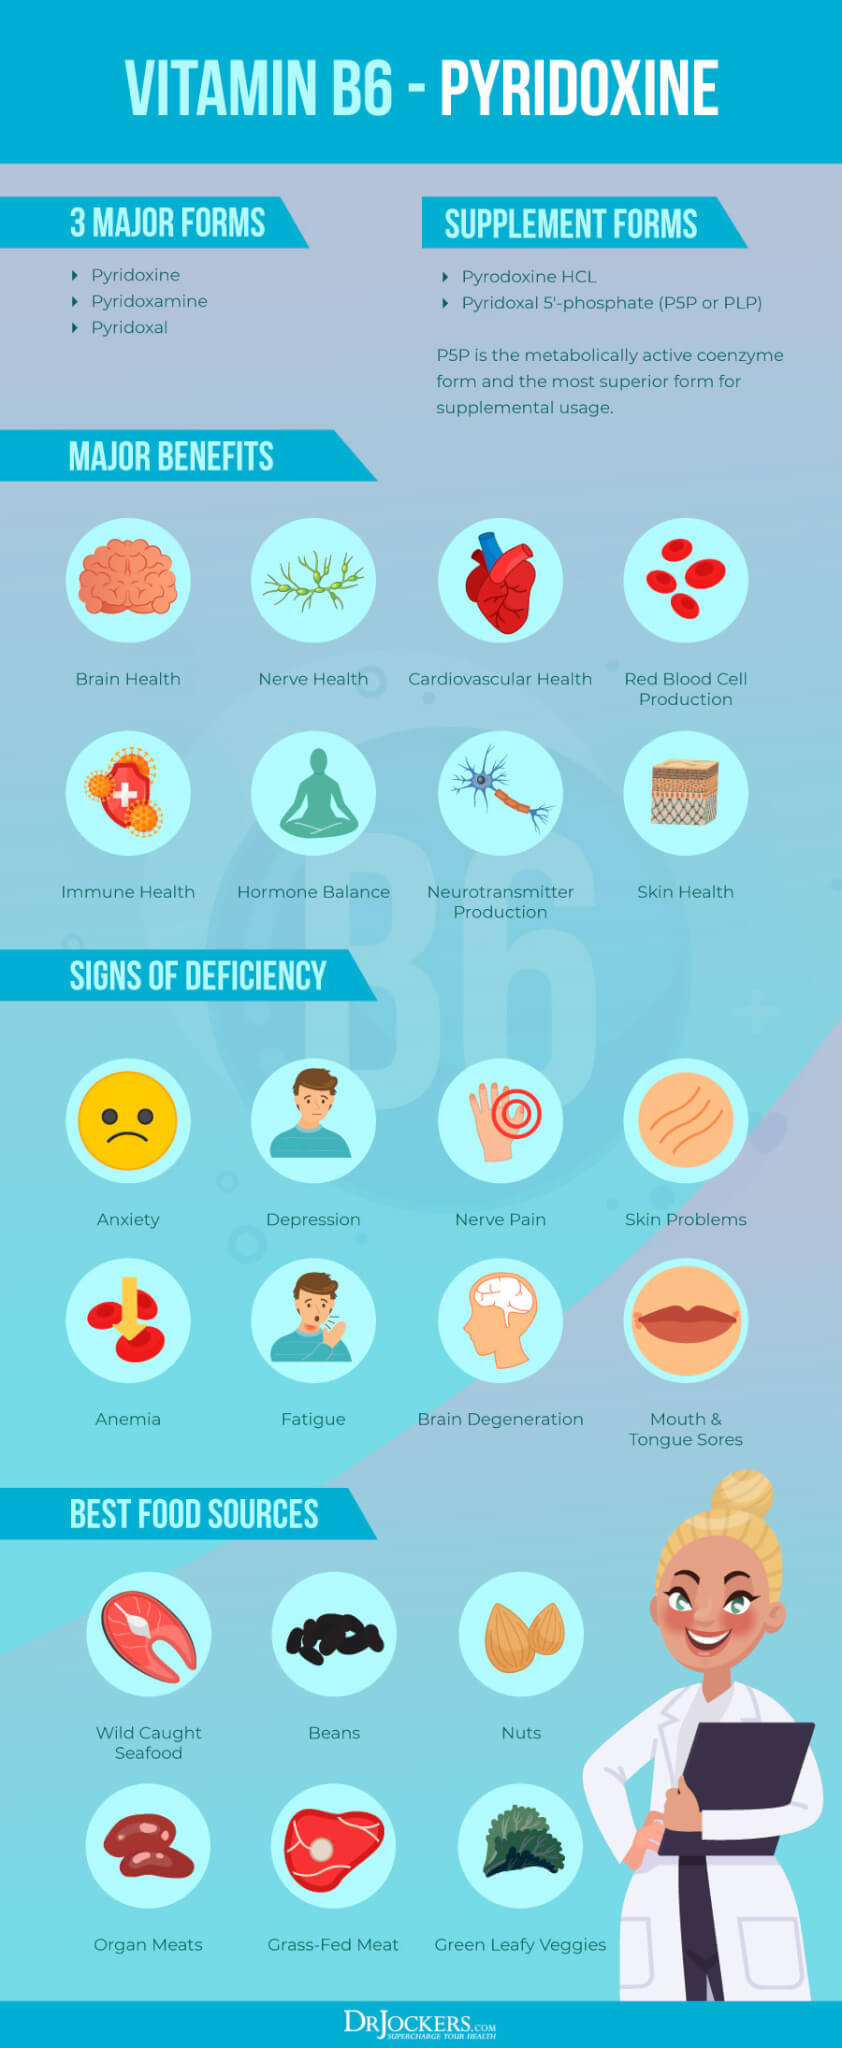 B Vitamin Deficiencies, B Vitamin Deficiencies: Symptoms, Causes, and Solutions